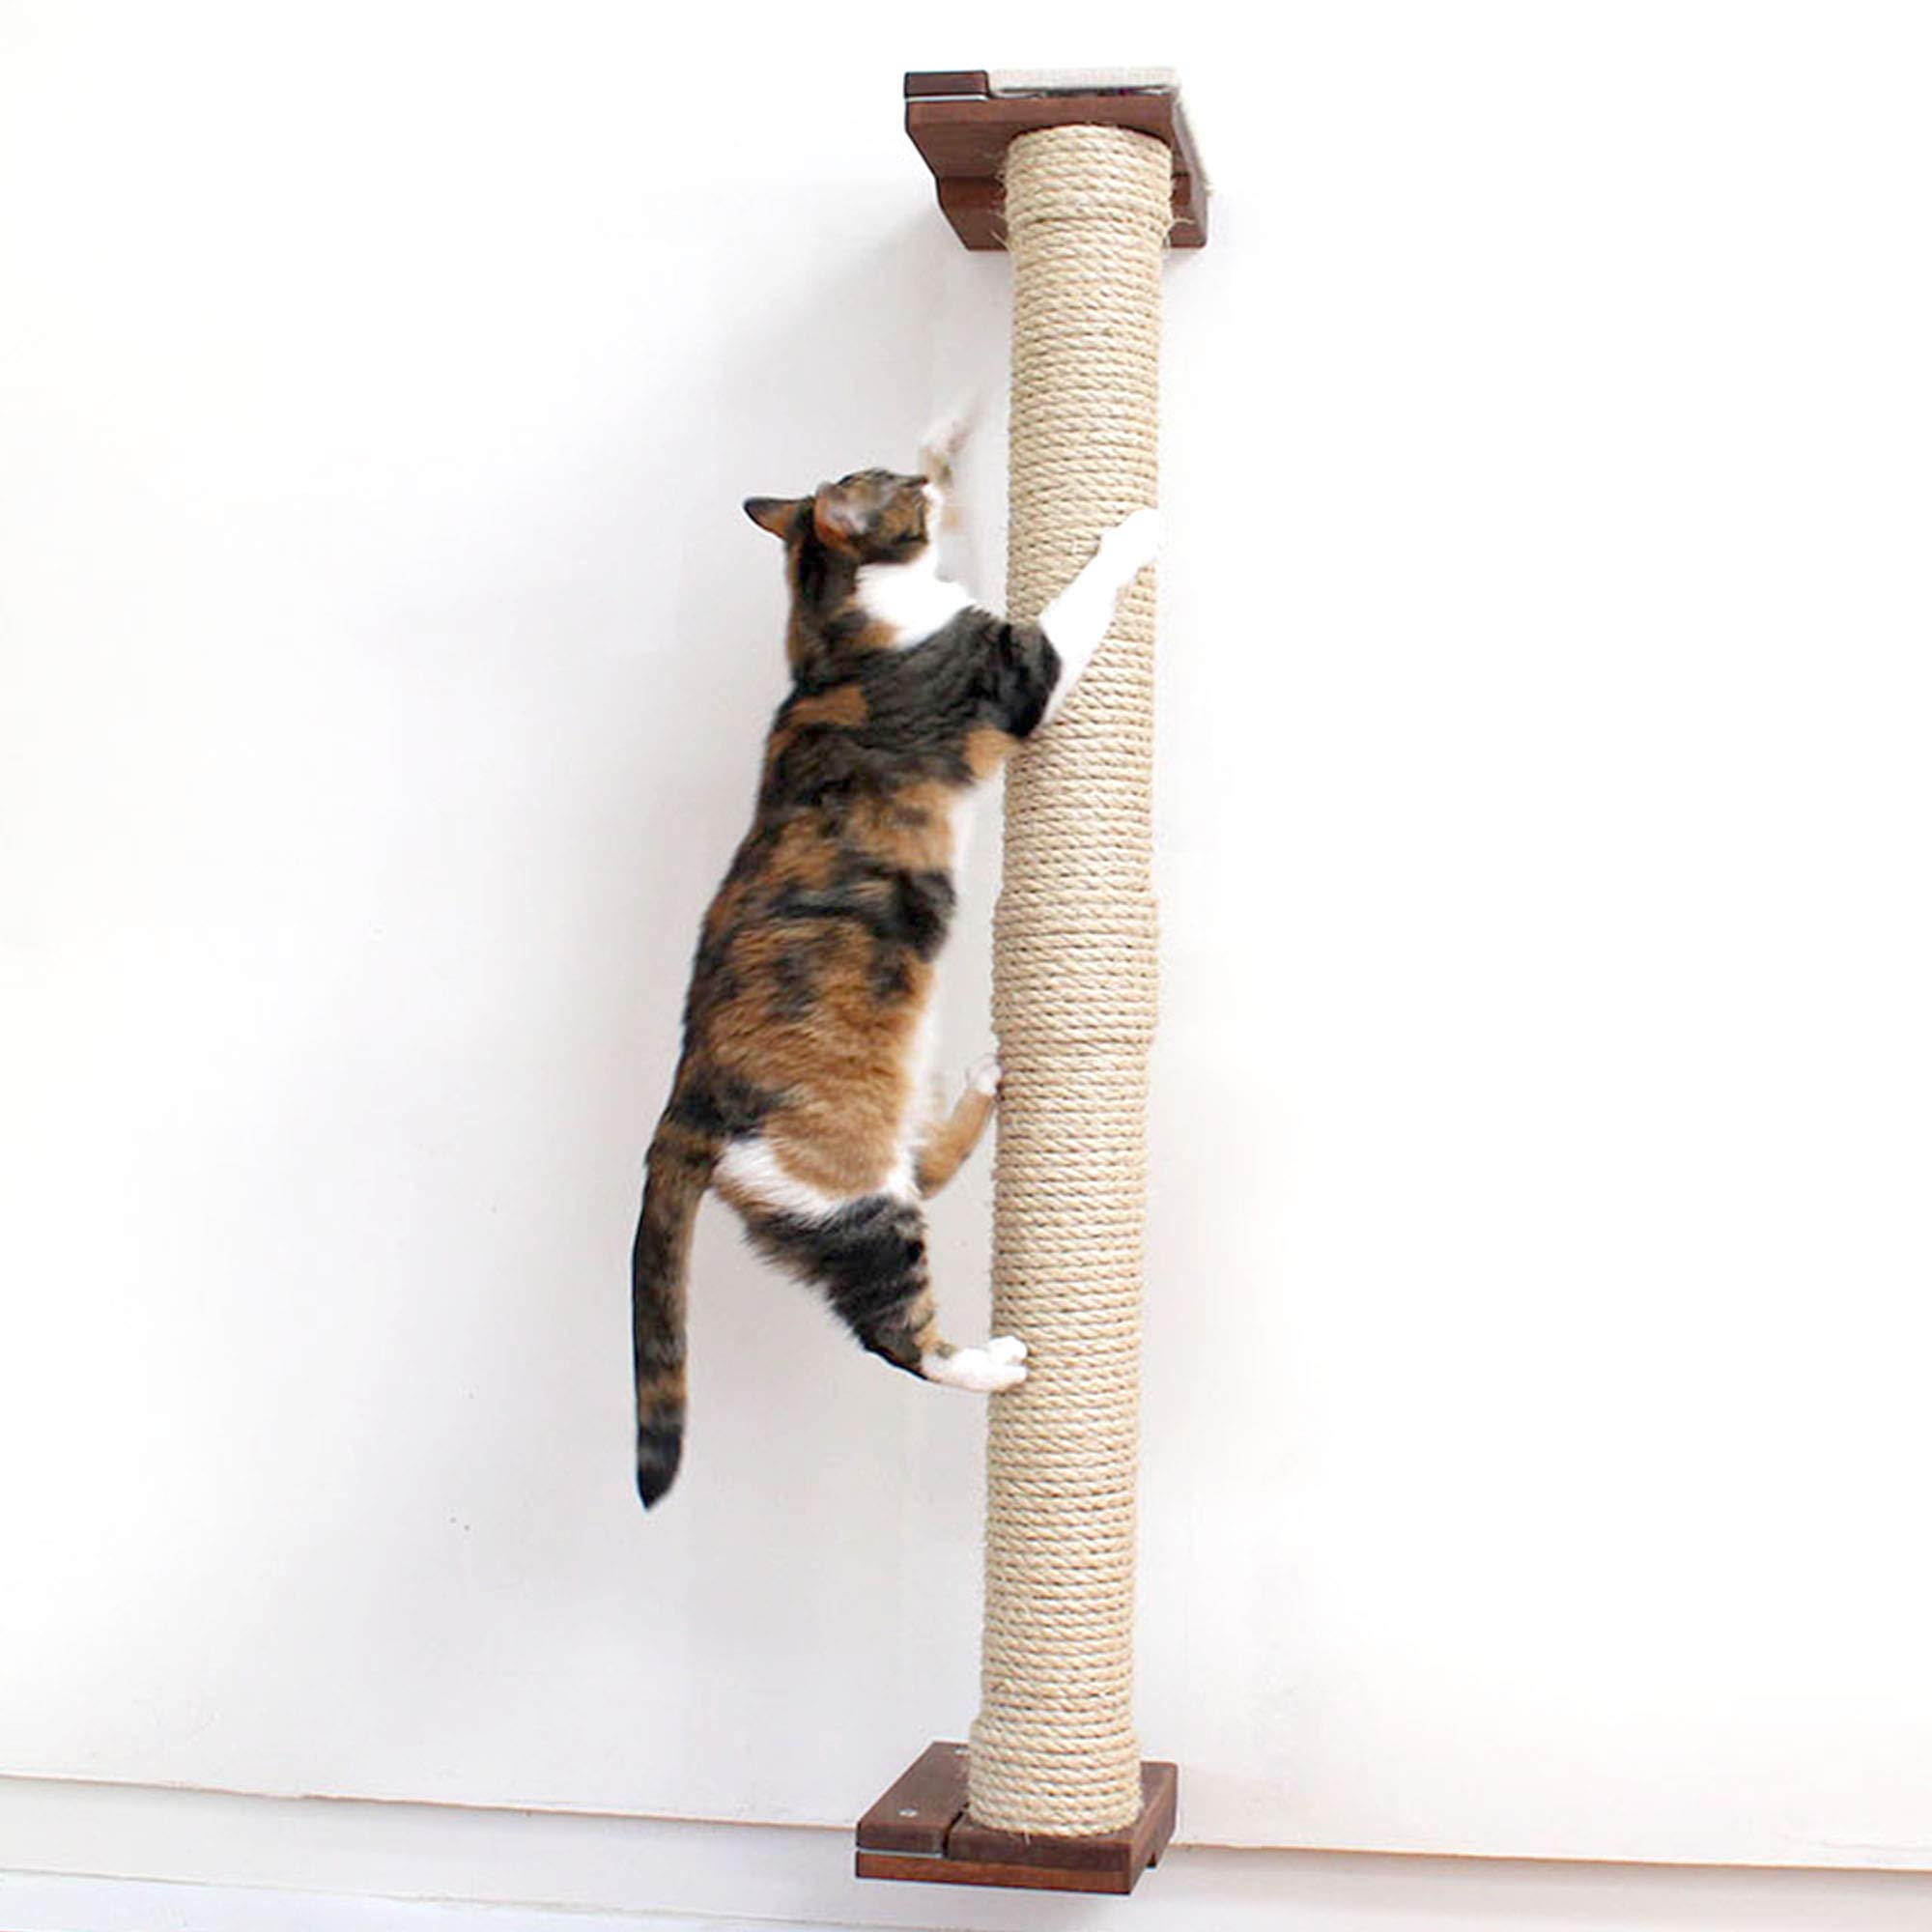 CatastrophiCreations Cat Mod 4' Climbing Vertical Sisal Pole Wall, English Chestnut, One Size by CatastrophiCreations